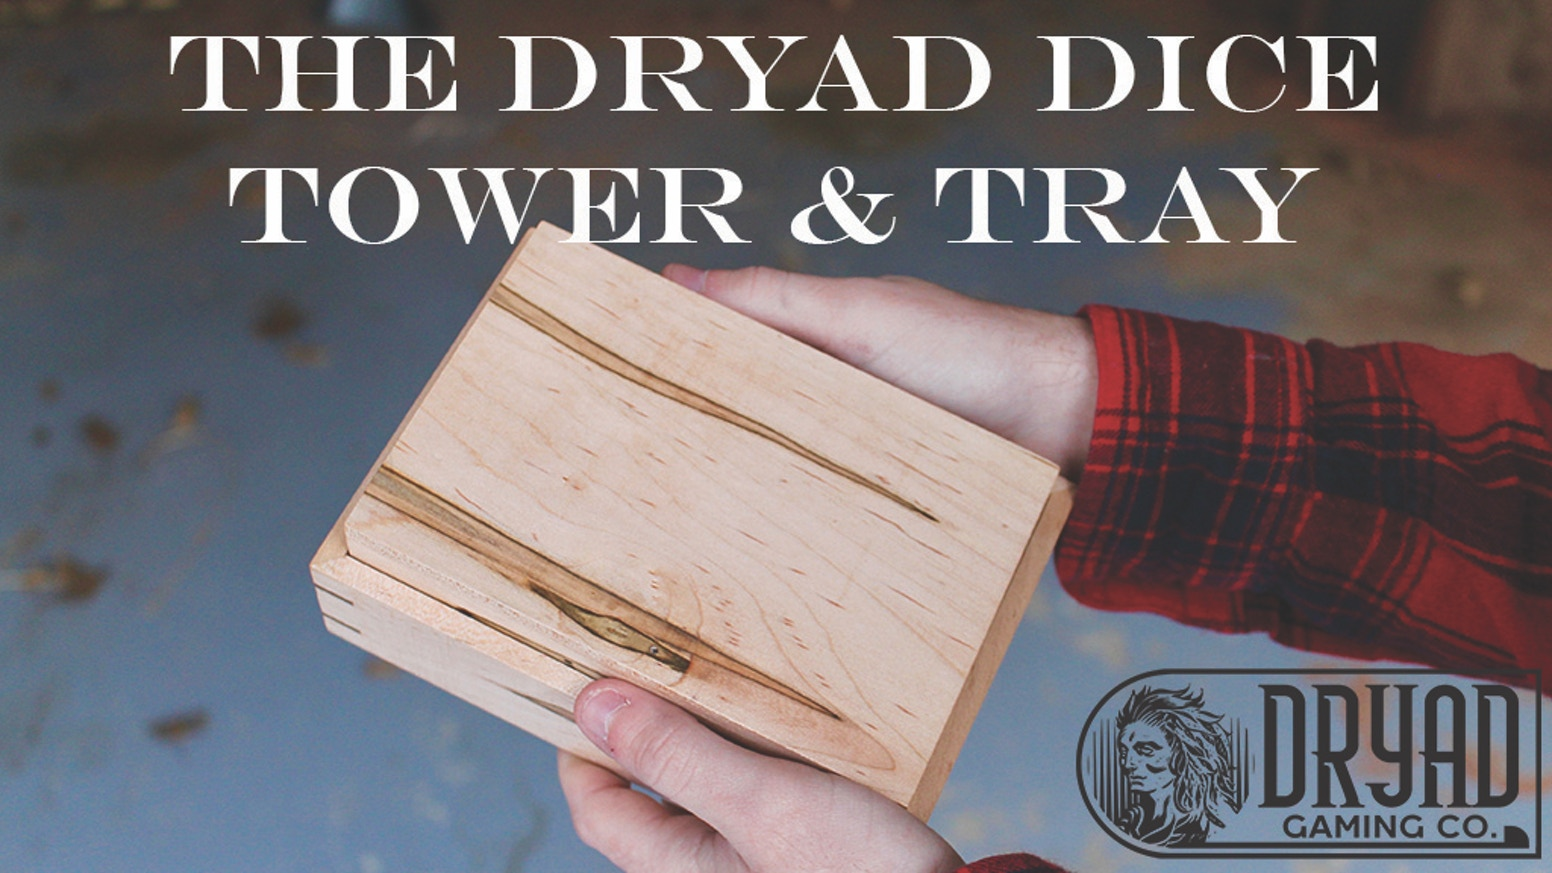 Extremely durable, handmade dice towers & trays out of fourteen different domestic and exotic hardwoods.